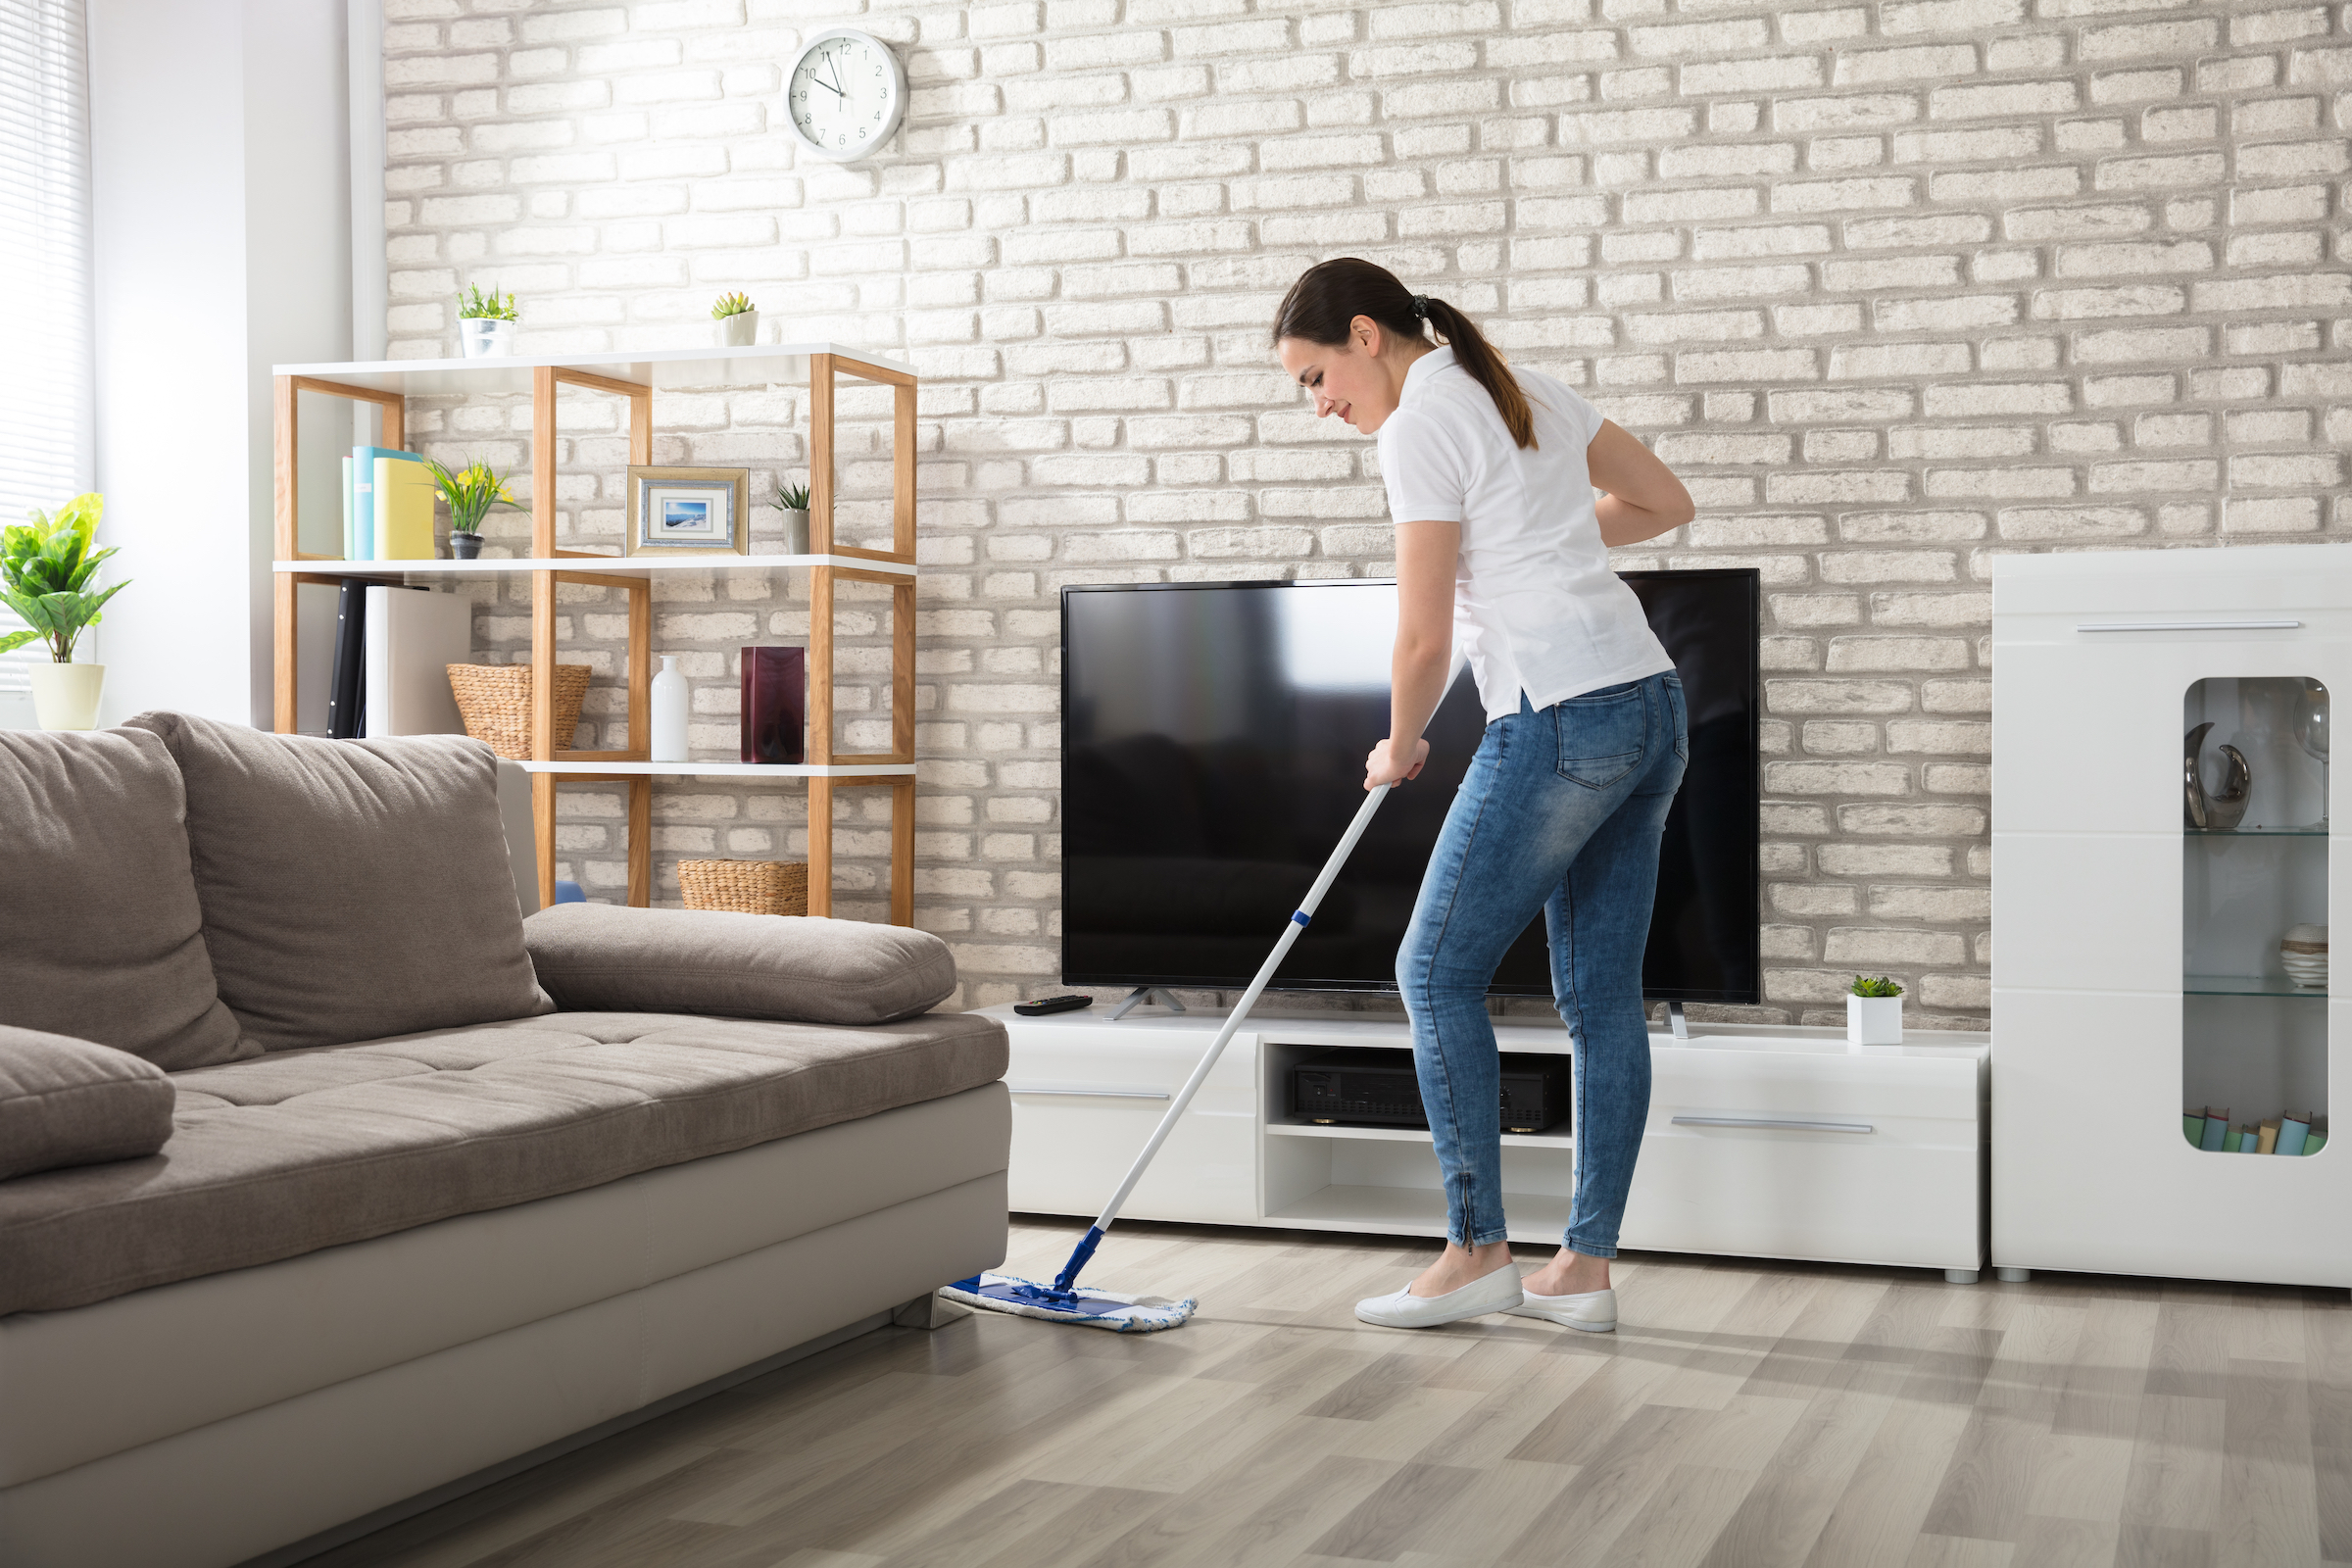 How to take care of hardwood floors: use proper cleaning supplies.